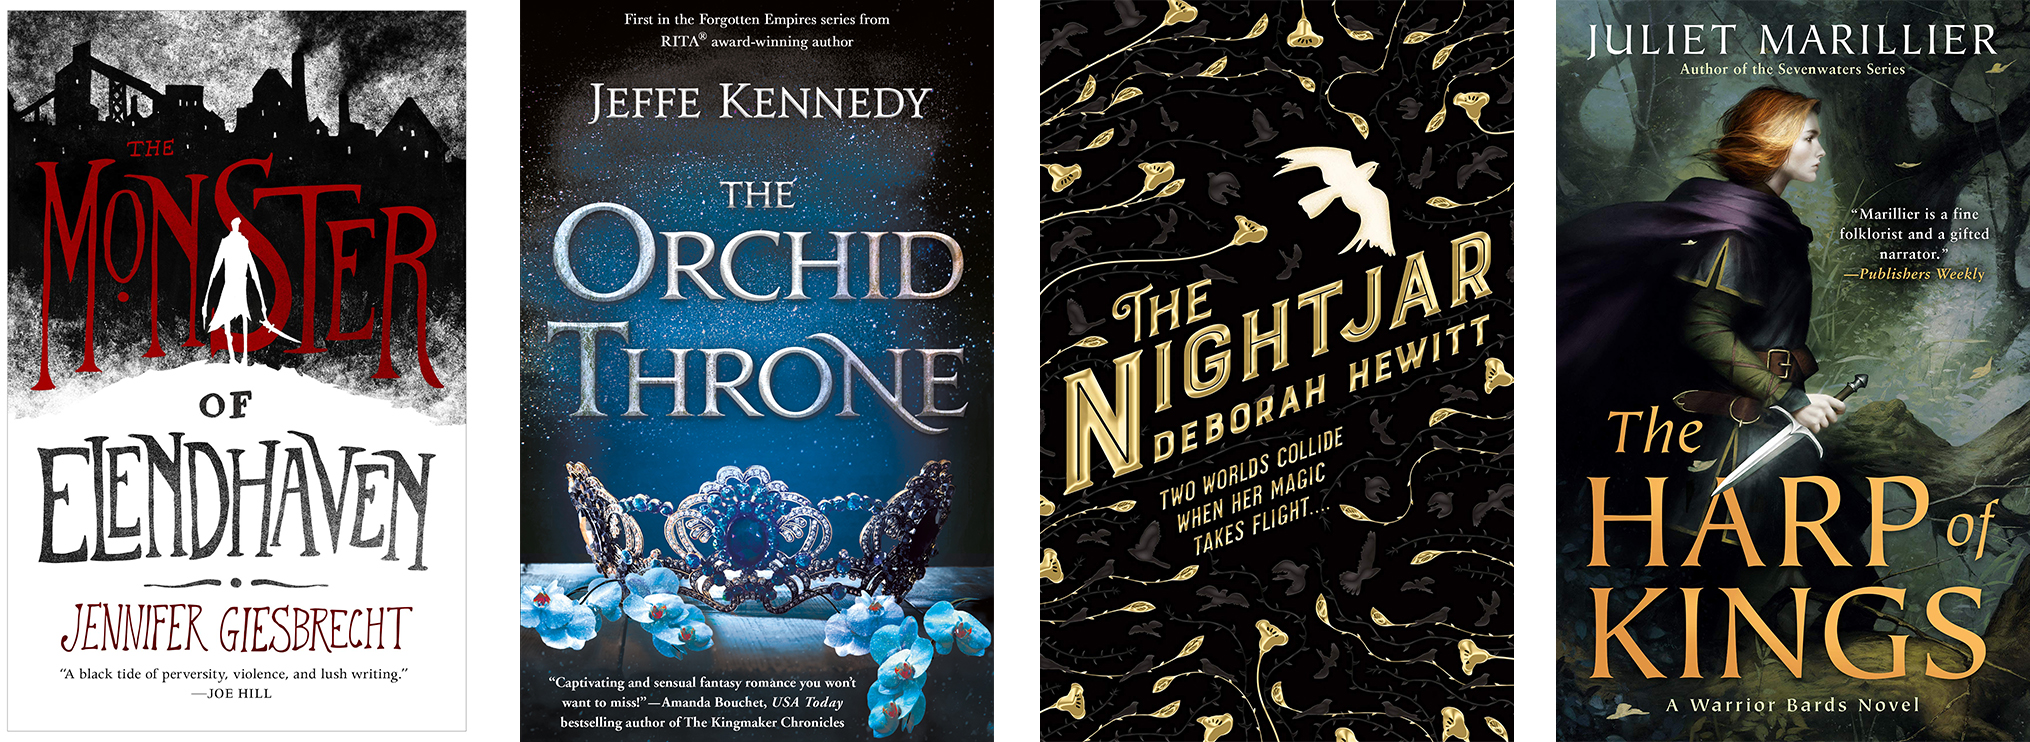 September 2019 Book Releases: Fantasy + Sci-Fi | The Nerd Daily